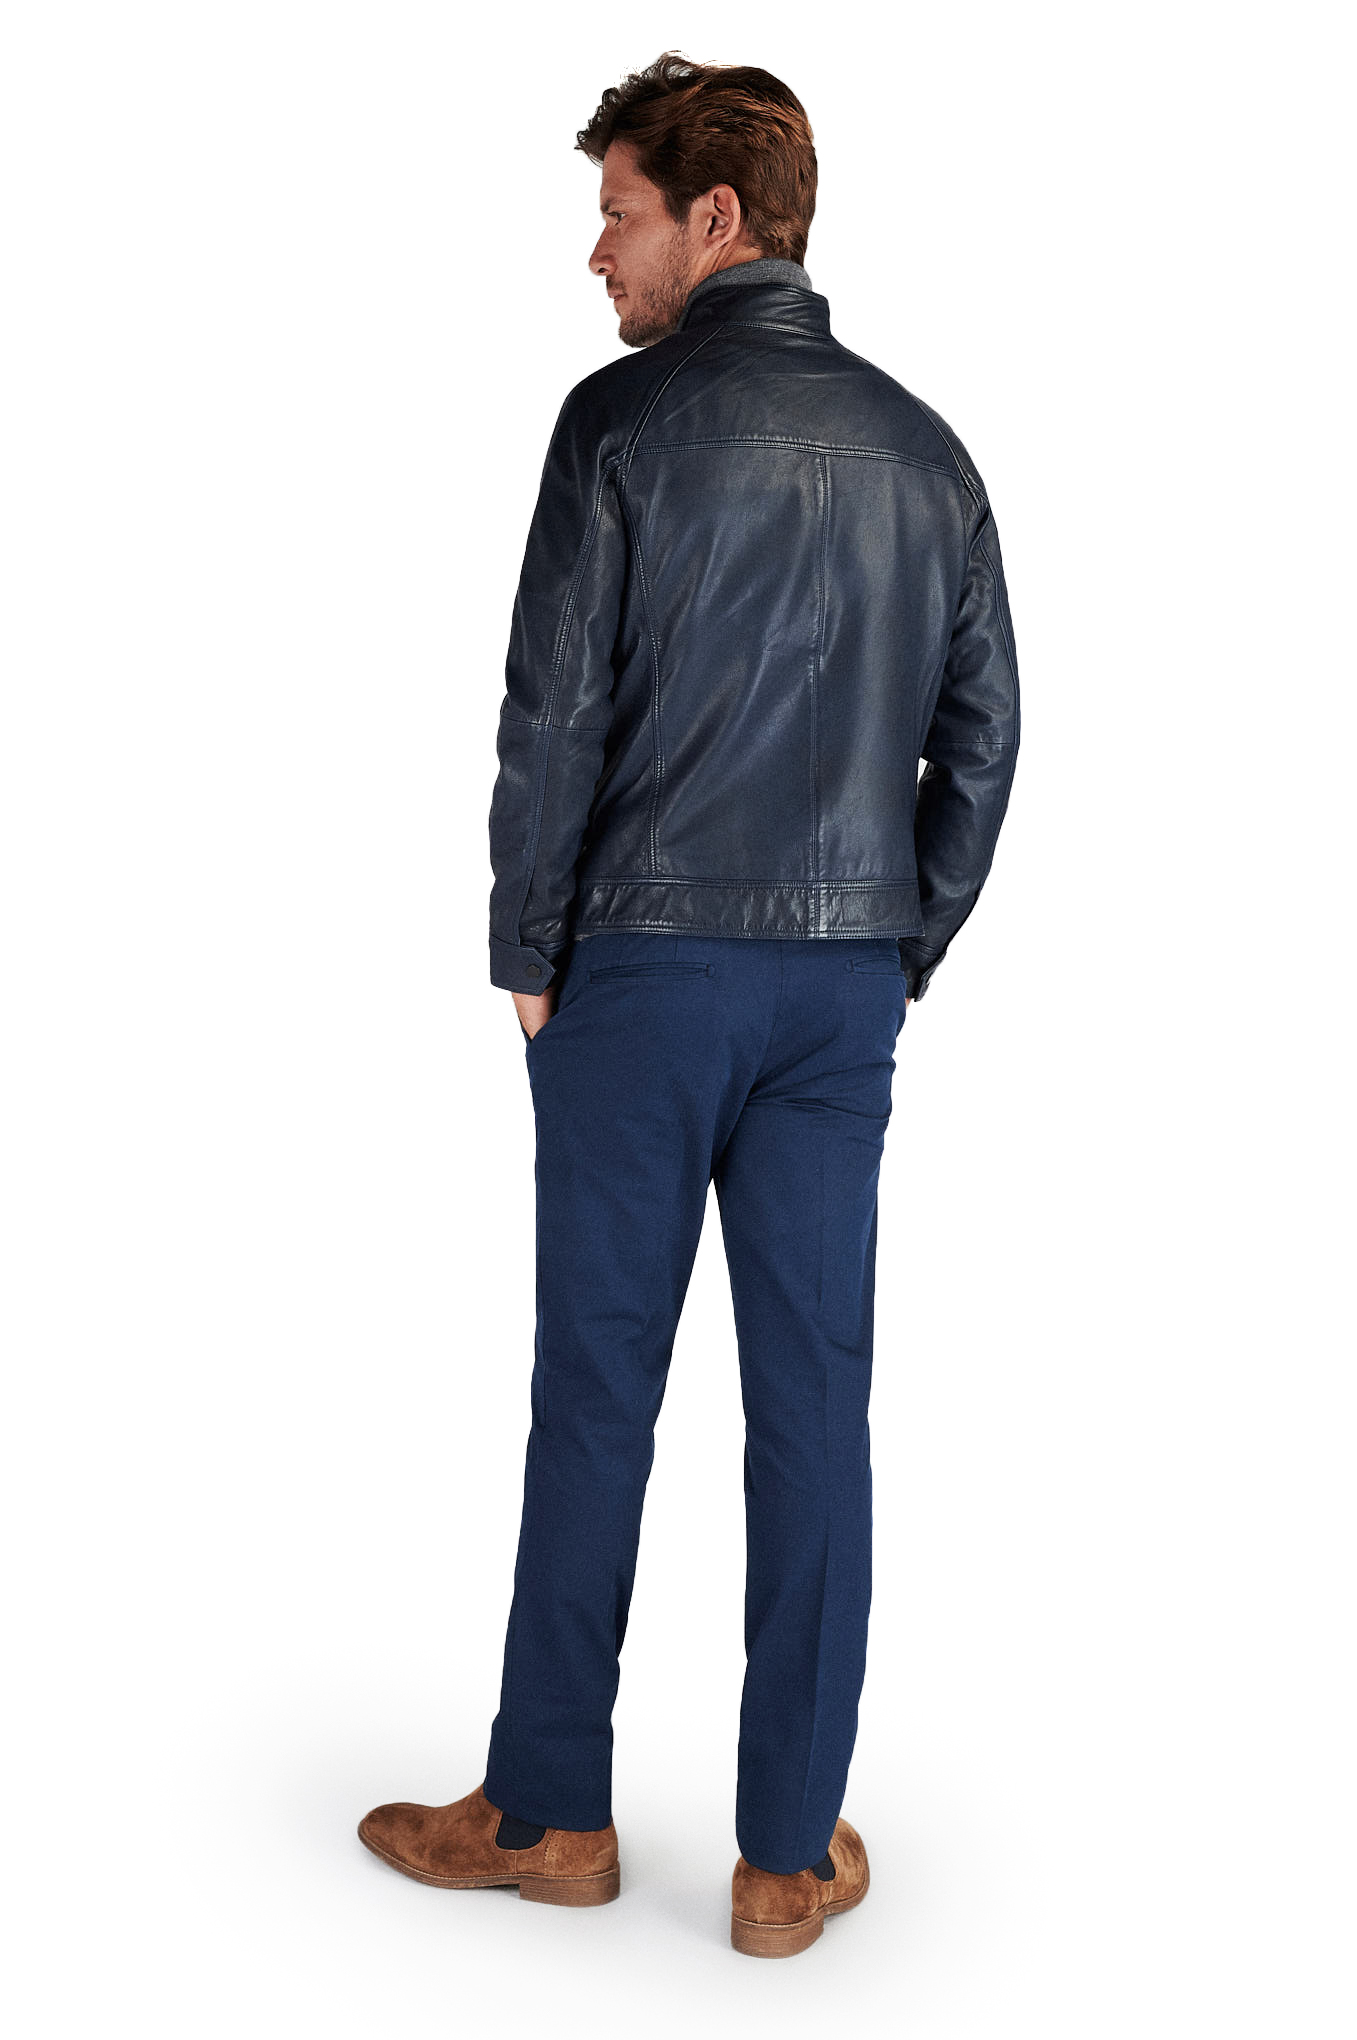 Leather Jacket Dark Blue Casual Man